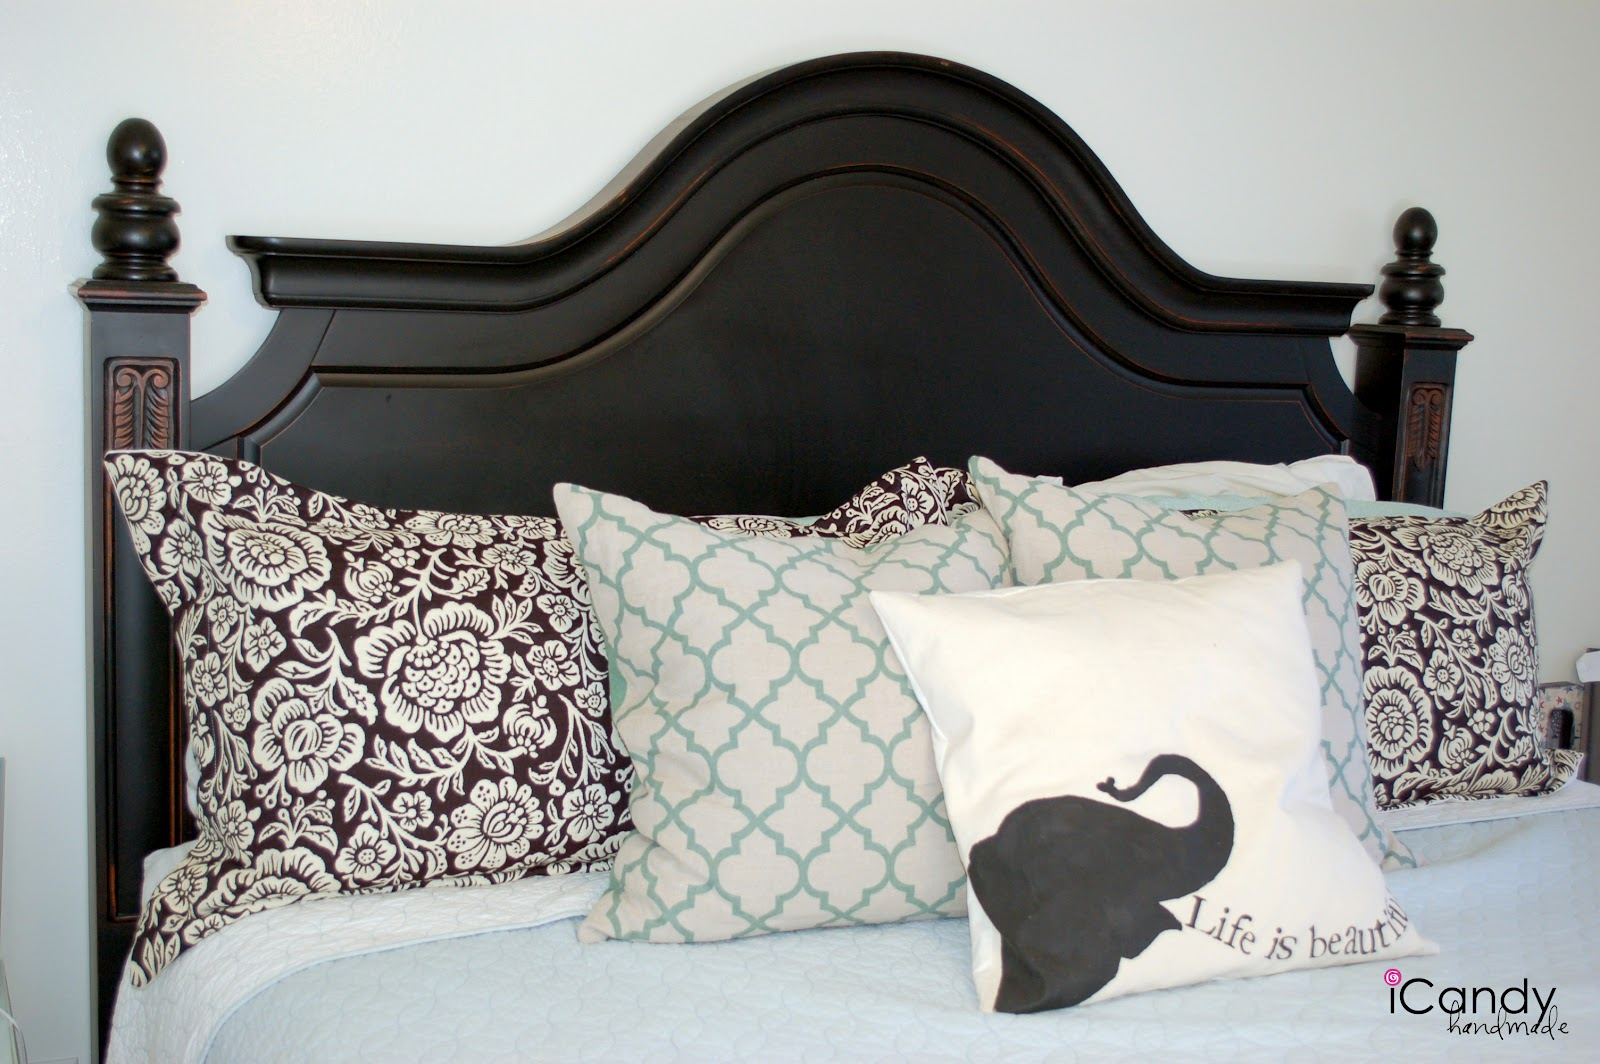 Diy king sized pillow shams and bed makeover icandy handmade for Z furniture outlet santa ana